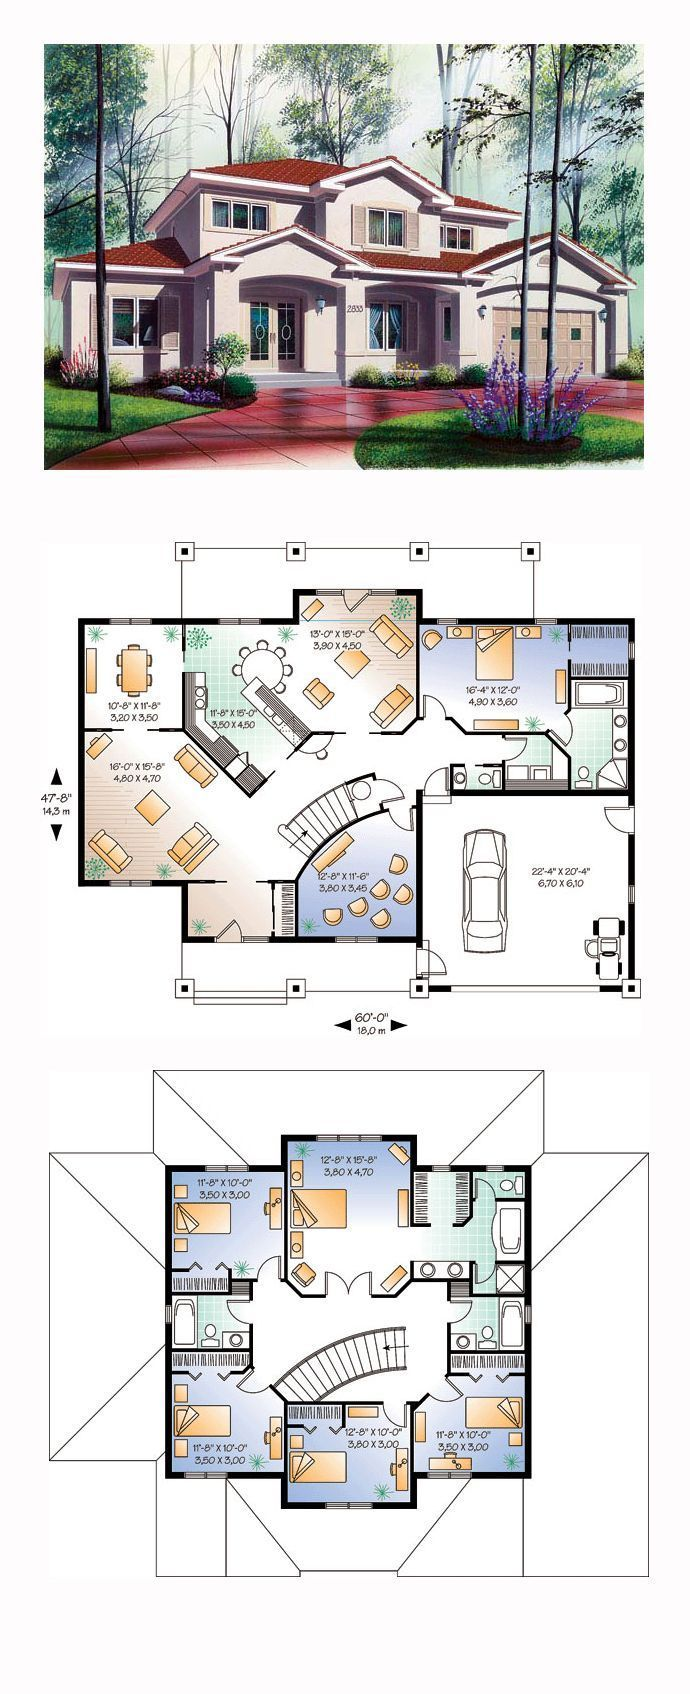 Luxury Living Luxury House Plan 64984 Total Living Area 3016 Modernhomedesign House Layout Plans Luxury House Plans Sims House Plans